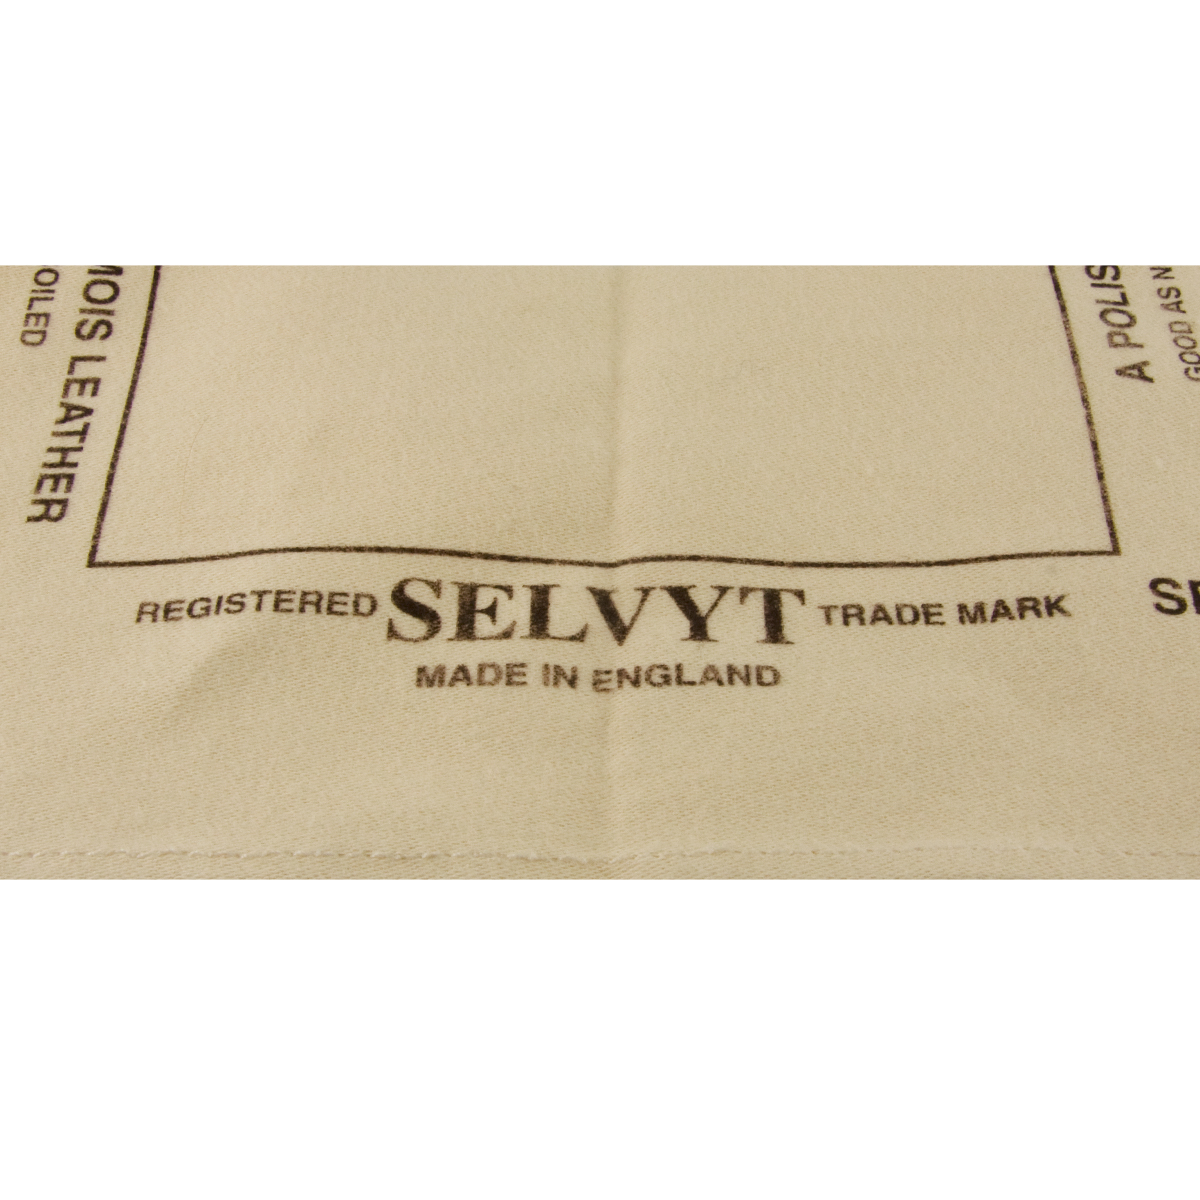 10X10 Inch Selvyt Polishing Cloth Tan - Pack of 1